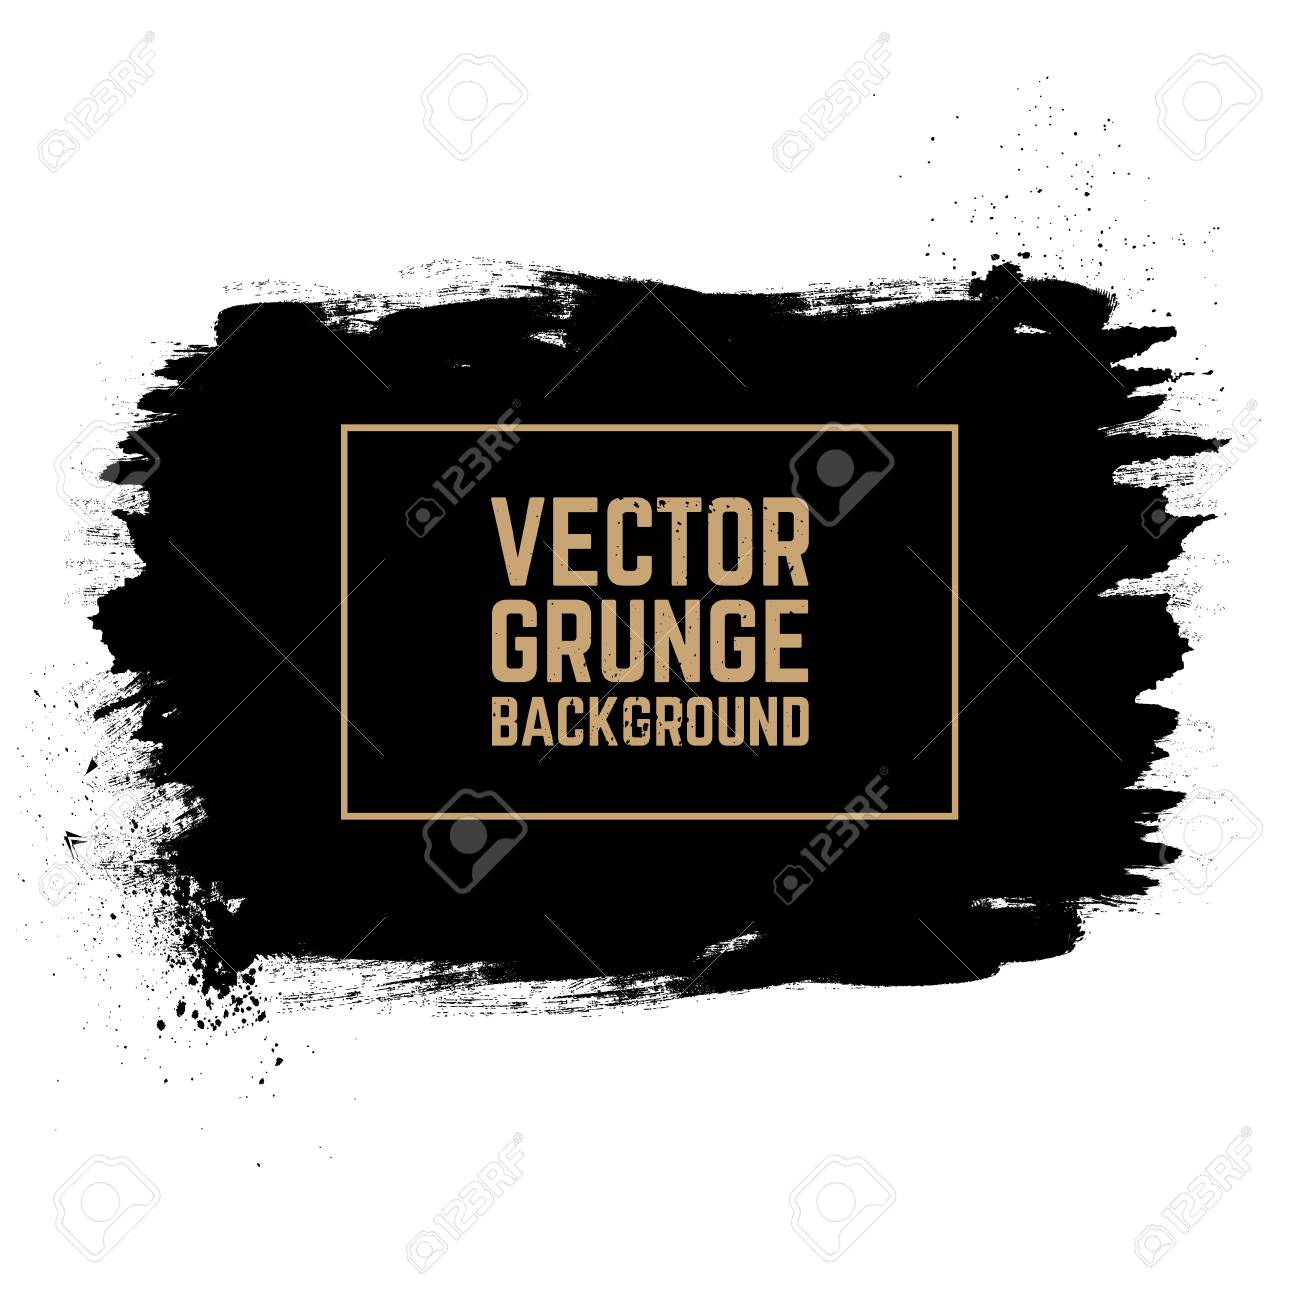 abstract vector grunge background chalk background retro rh 123rf com grunge background vector 1280x720 vector grunge sunburst background